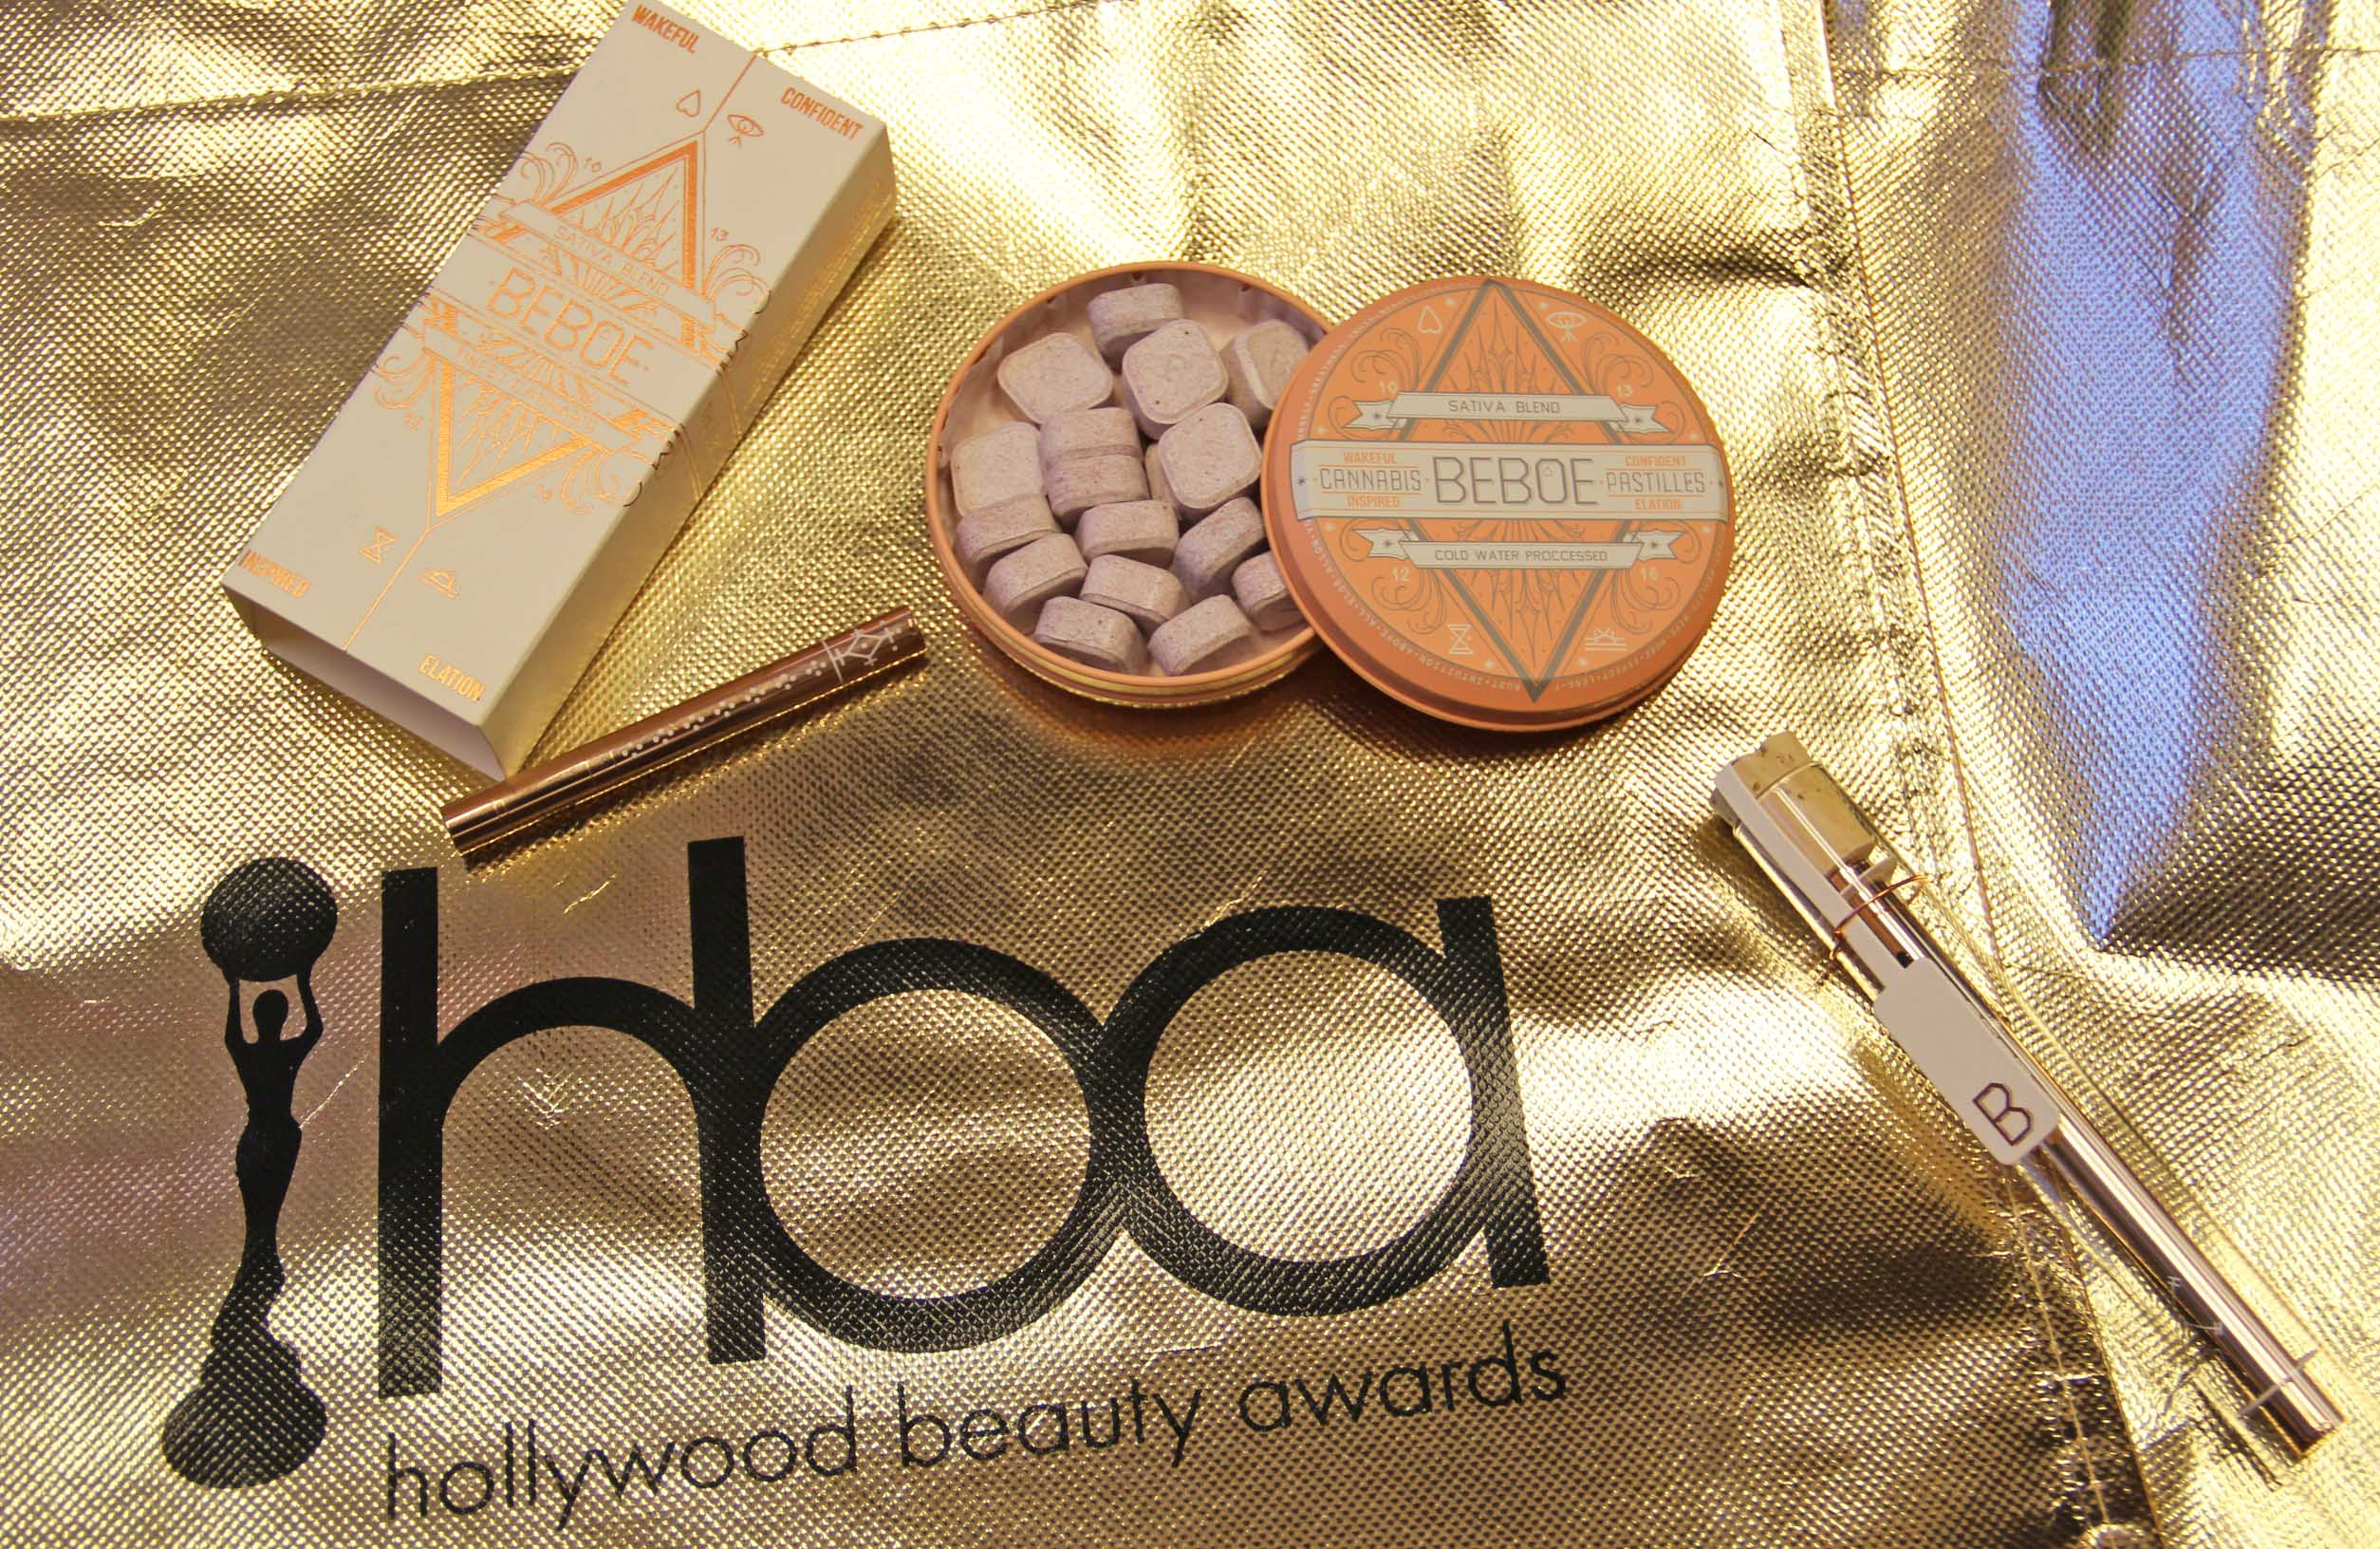 2018 hollywood beauty awards gift bags, beboe